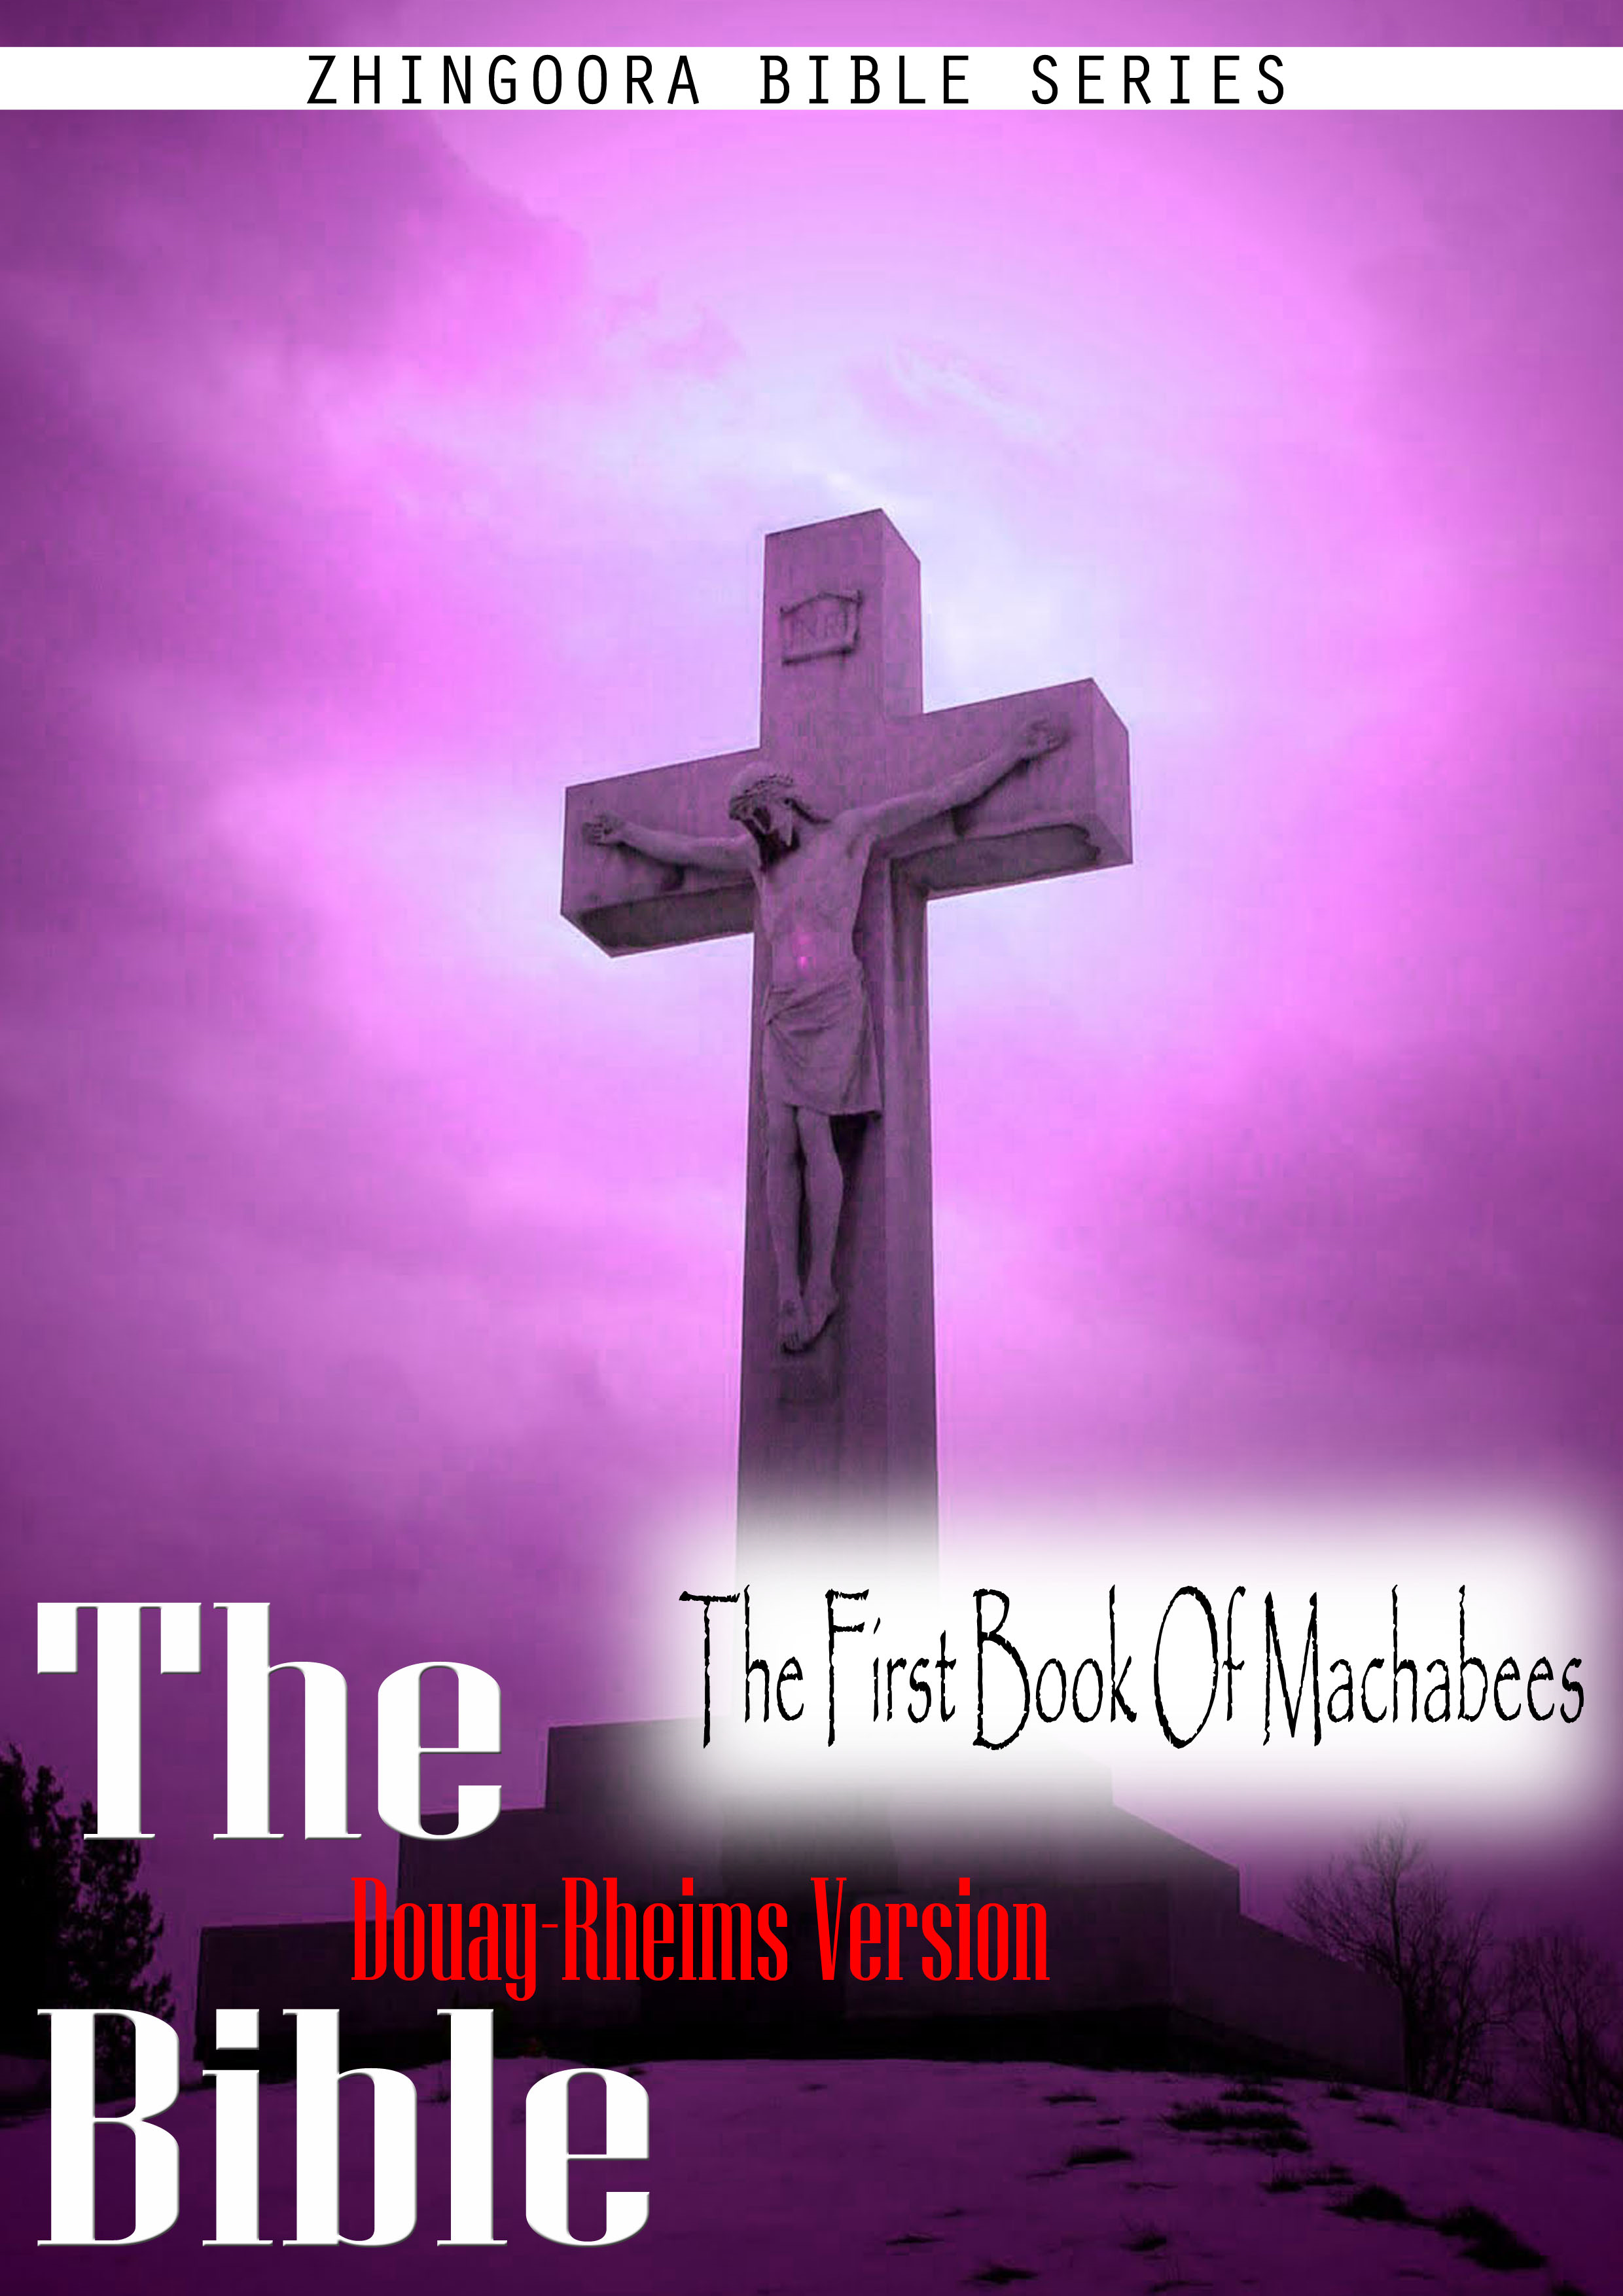 The Holy Bible Douay-Rheims Version,The First Book Of Machabees By: Zhingoora Bible series